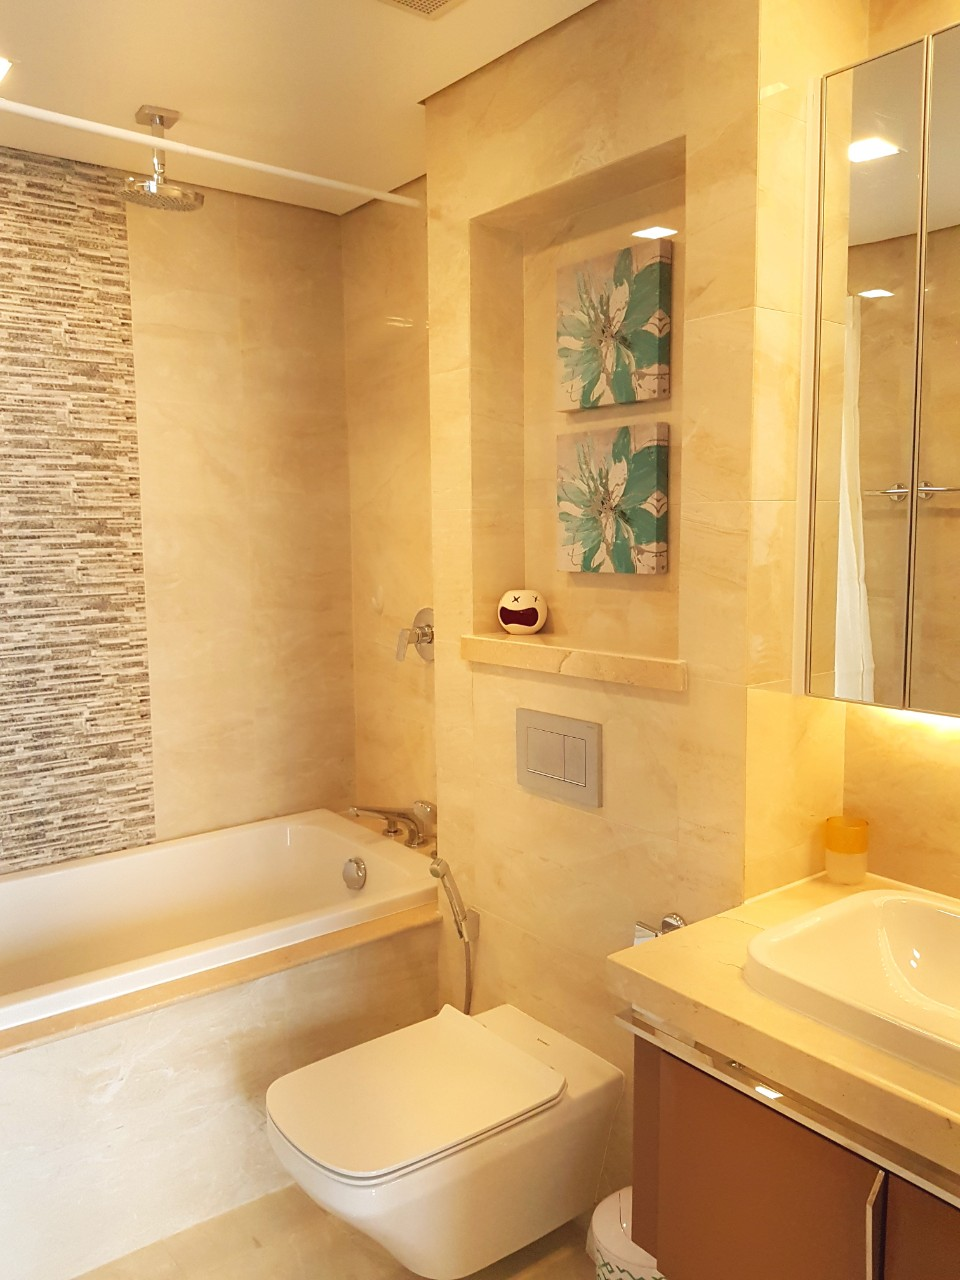 vinhomes golden river apartment for rent in district 1 hcmc D102272 (11)